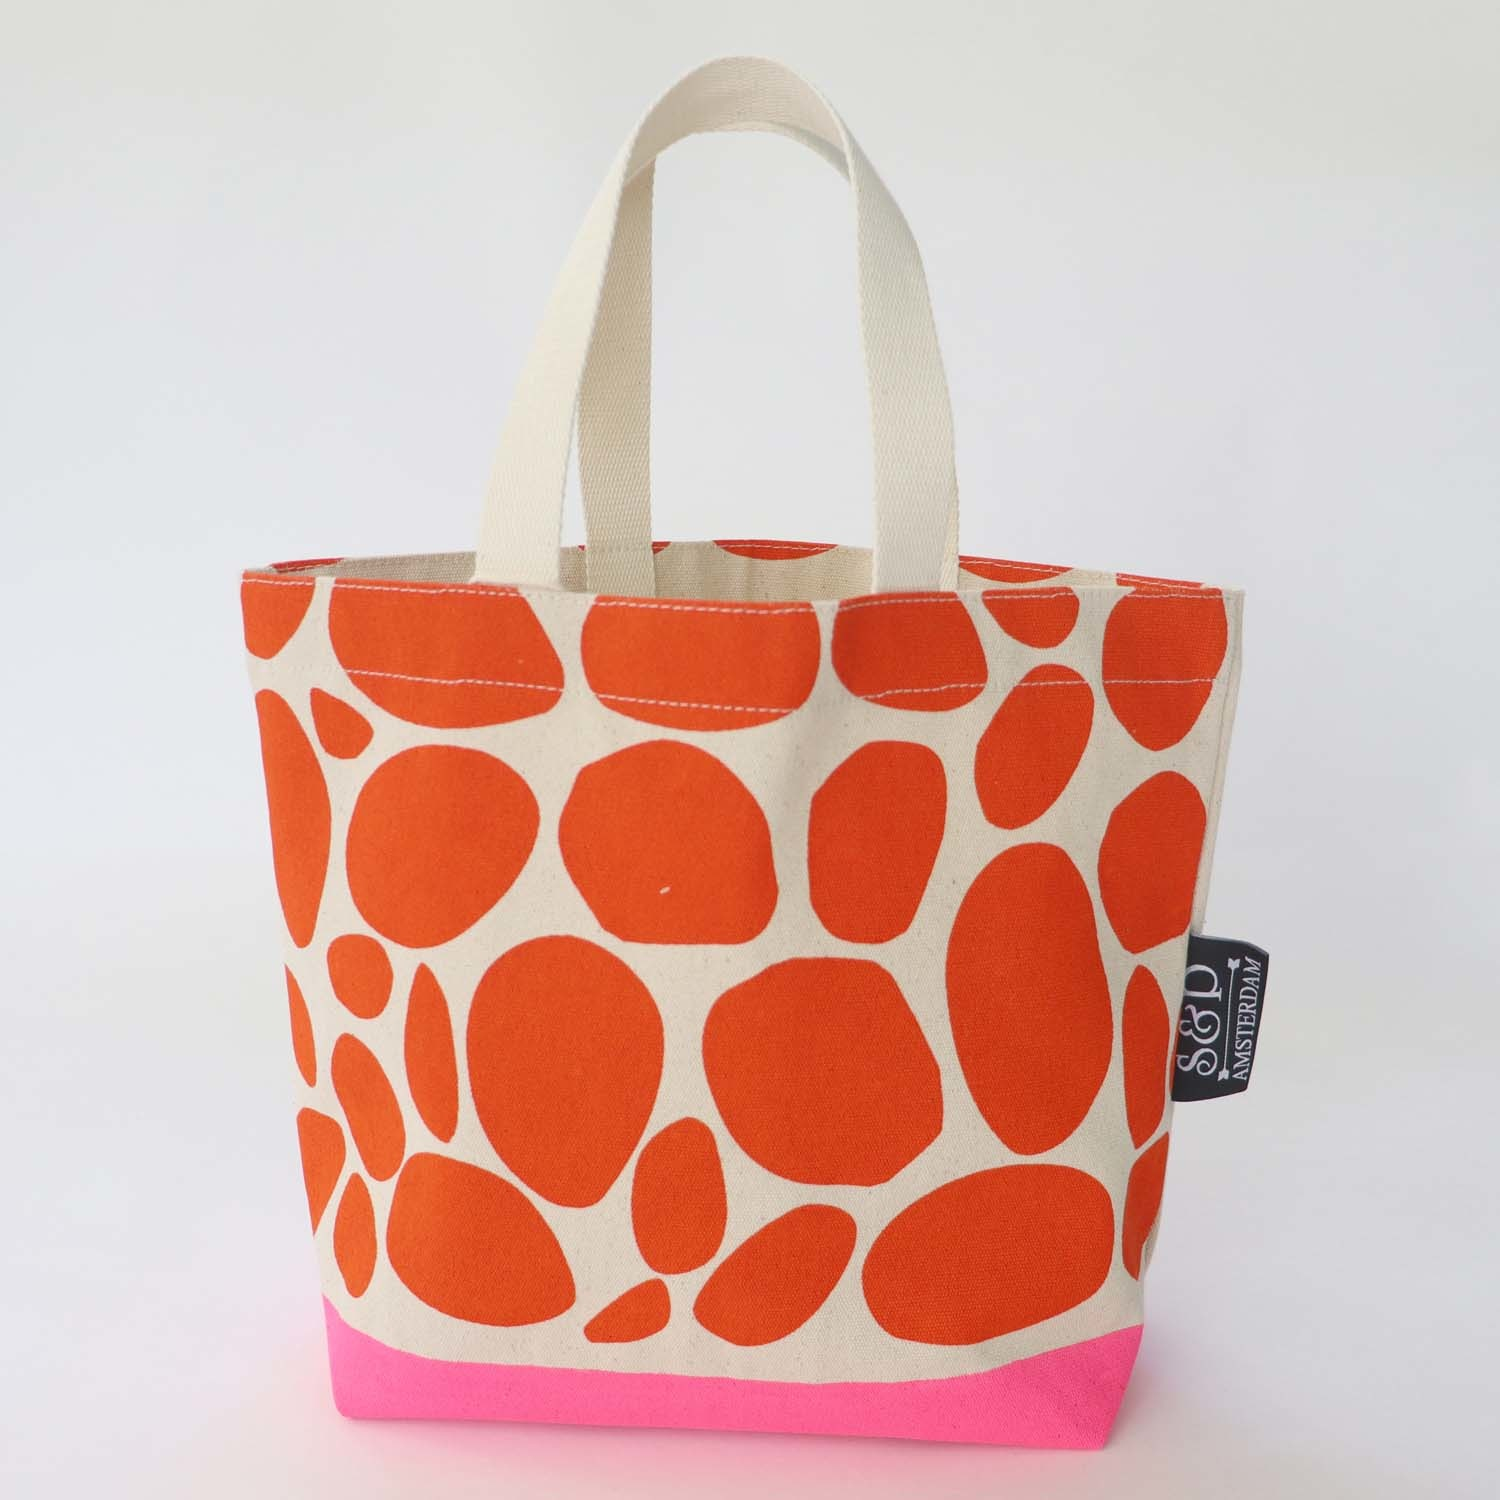 LOVE IT NIKO BAG - PEBBLES